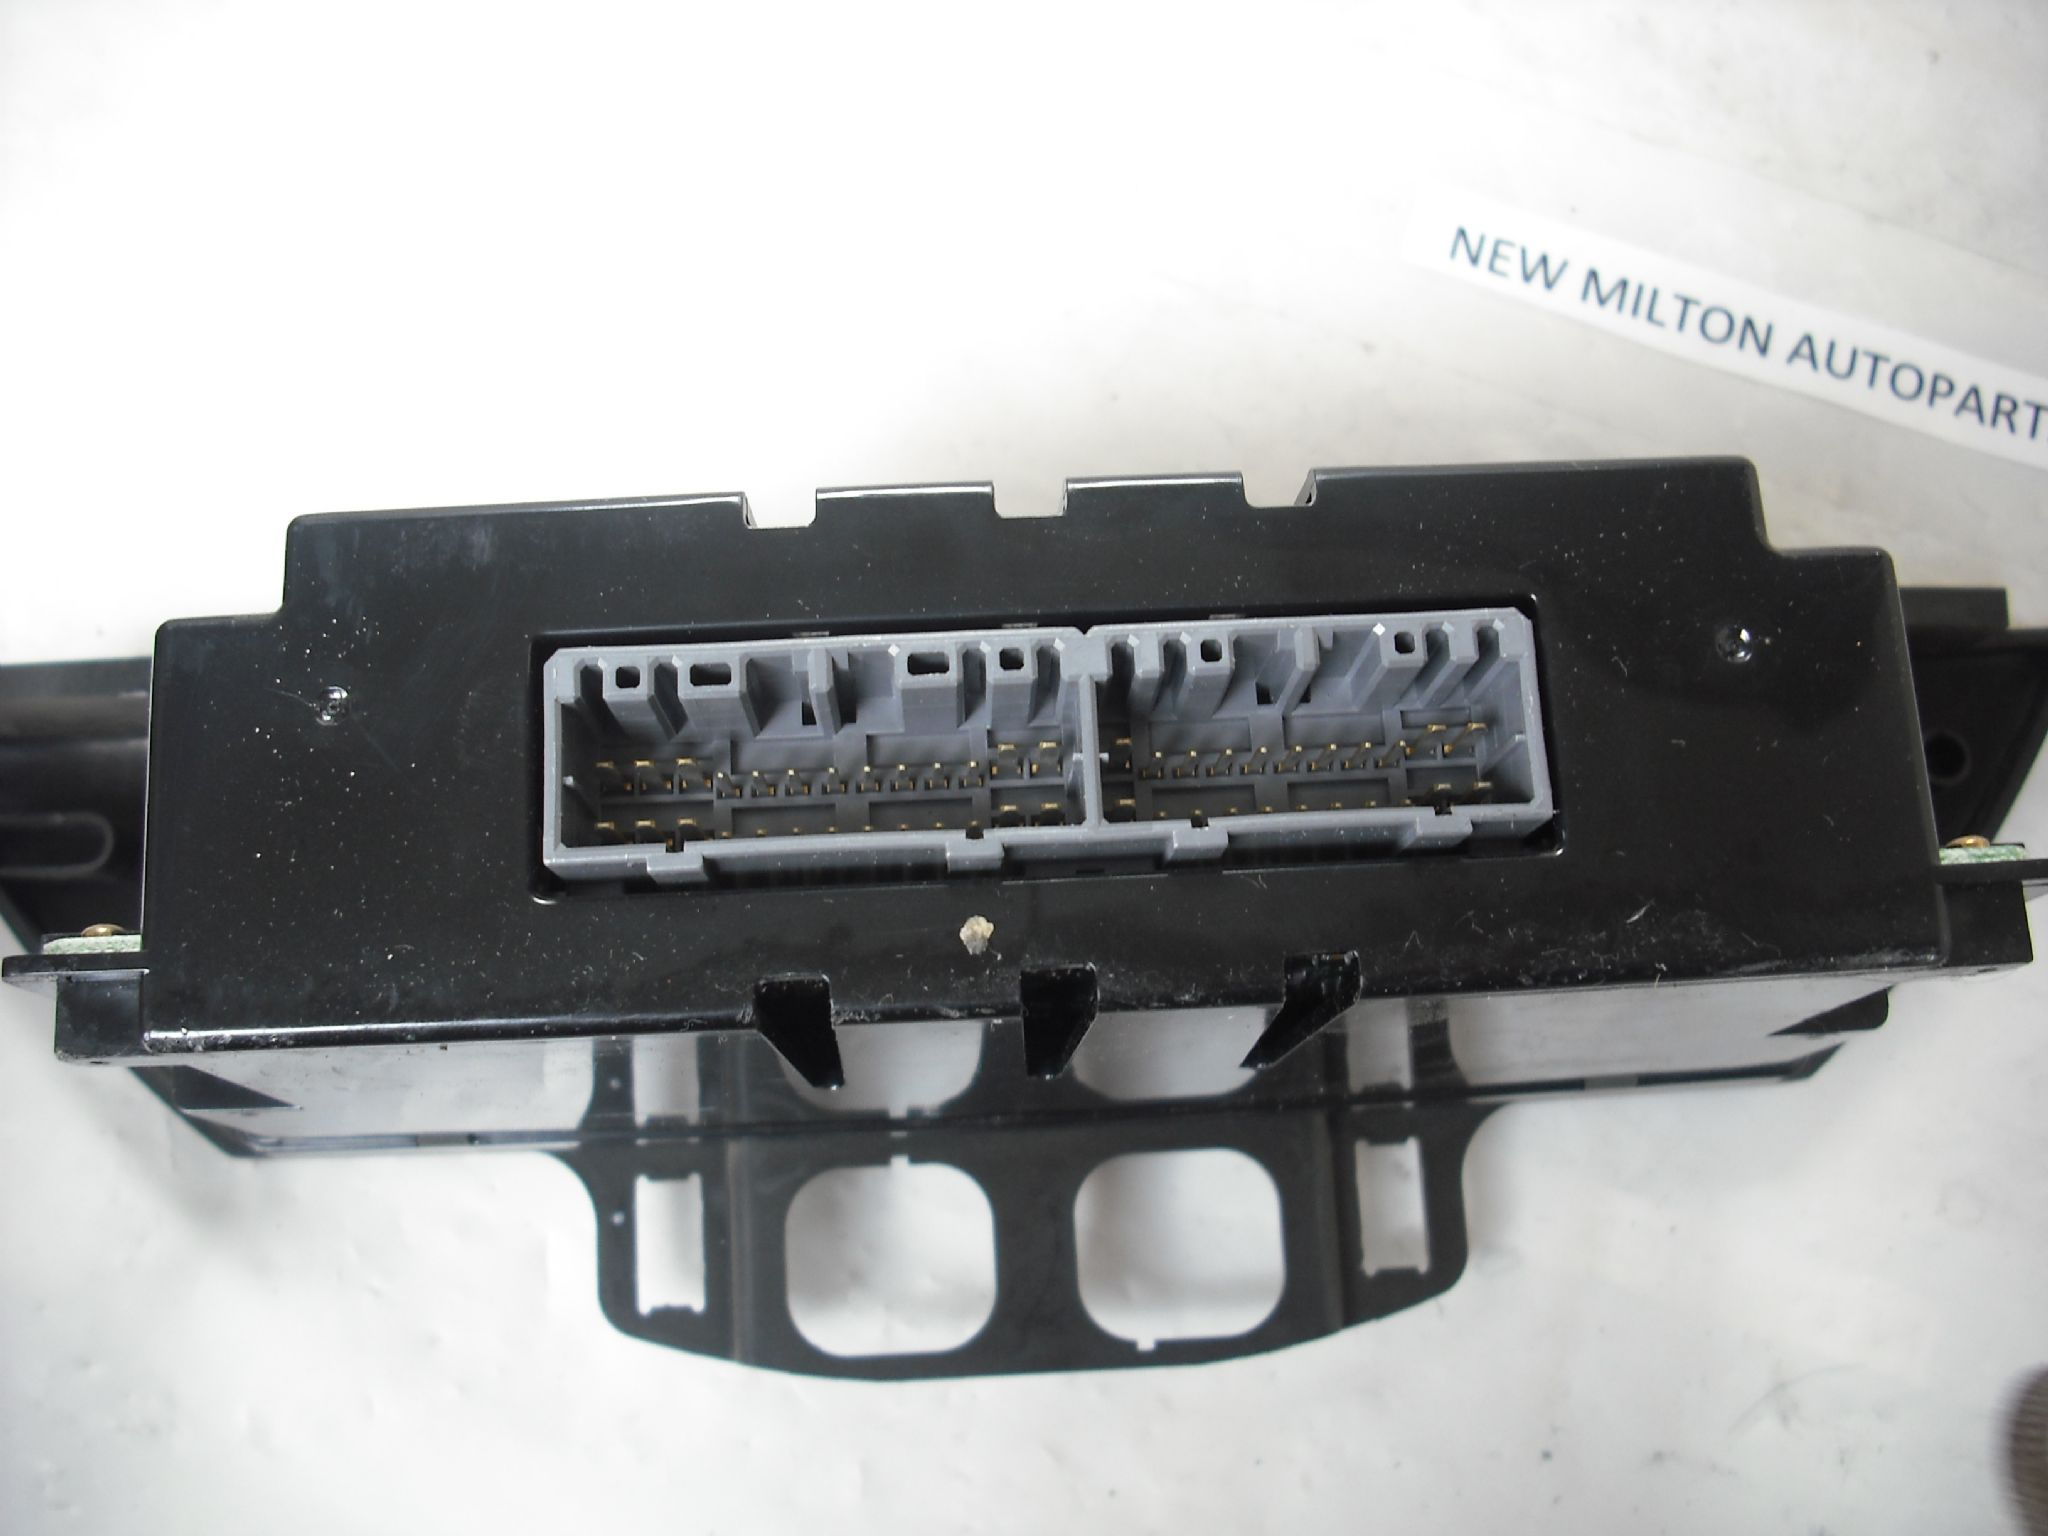 heater controls e c c fits 2002 volvo Shop from the world's largest selection and best deals for a/c & heater controls for volvo xc70 shop with confidence on ebay.